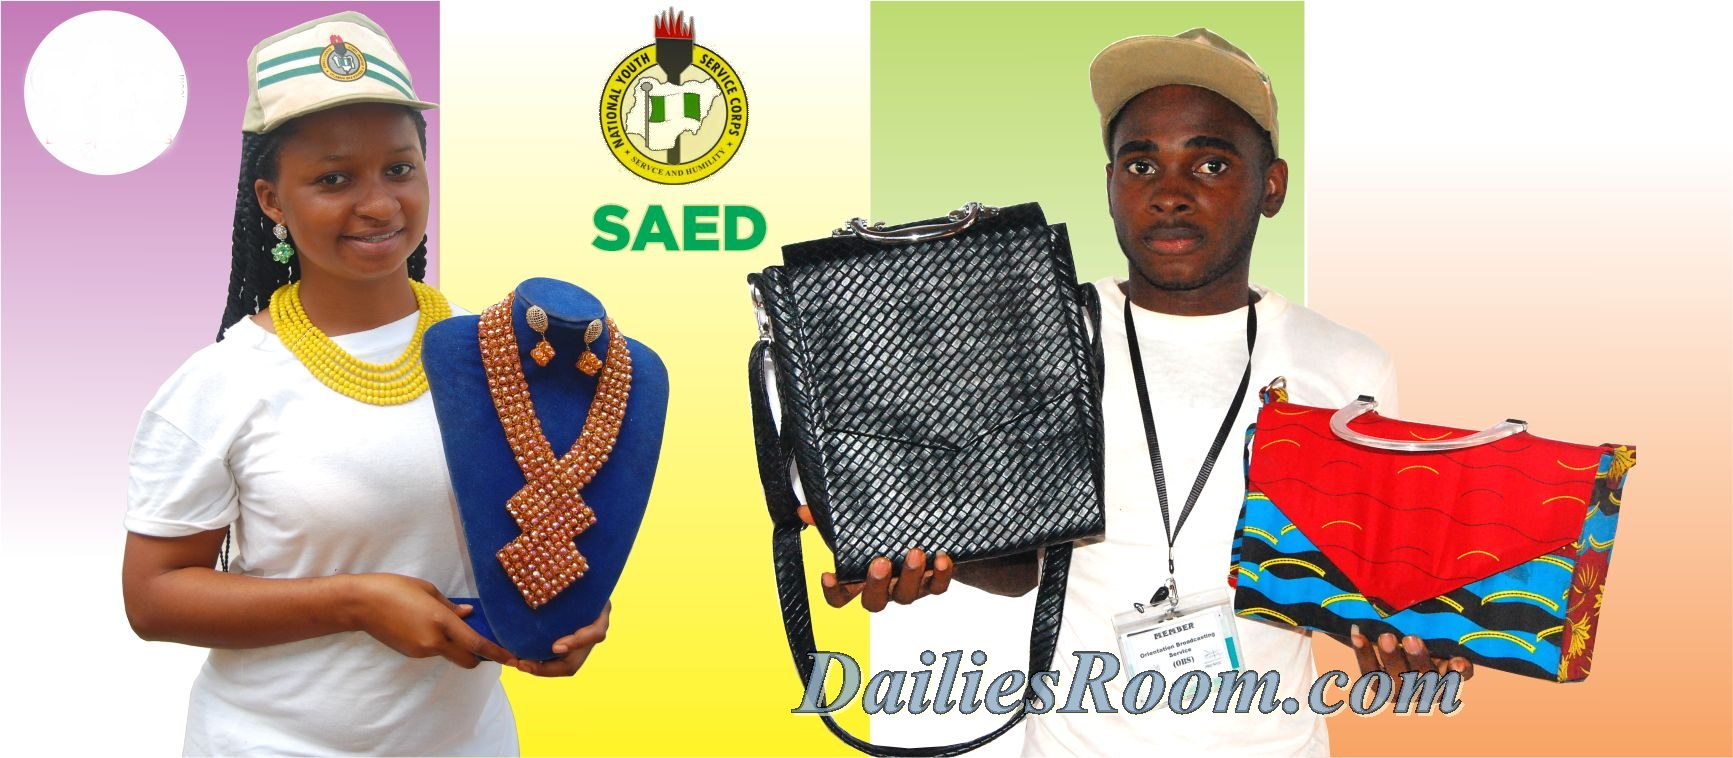 Free NYSC SAED Connect Account Registration | www.saedconnect.com